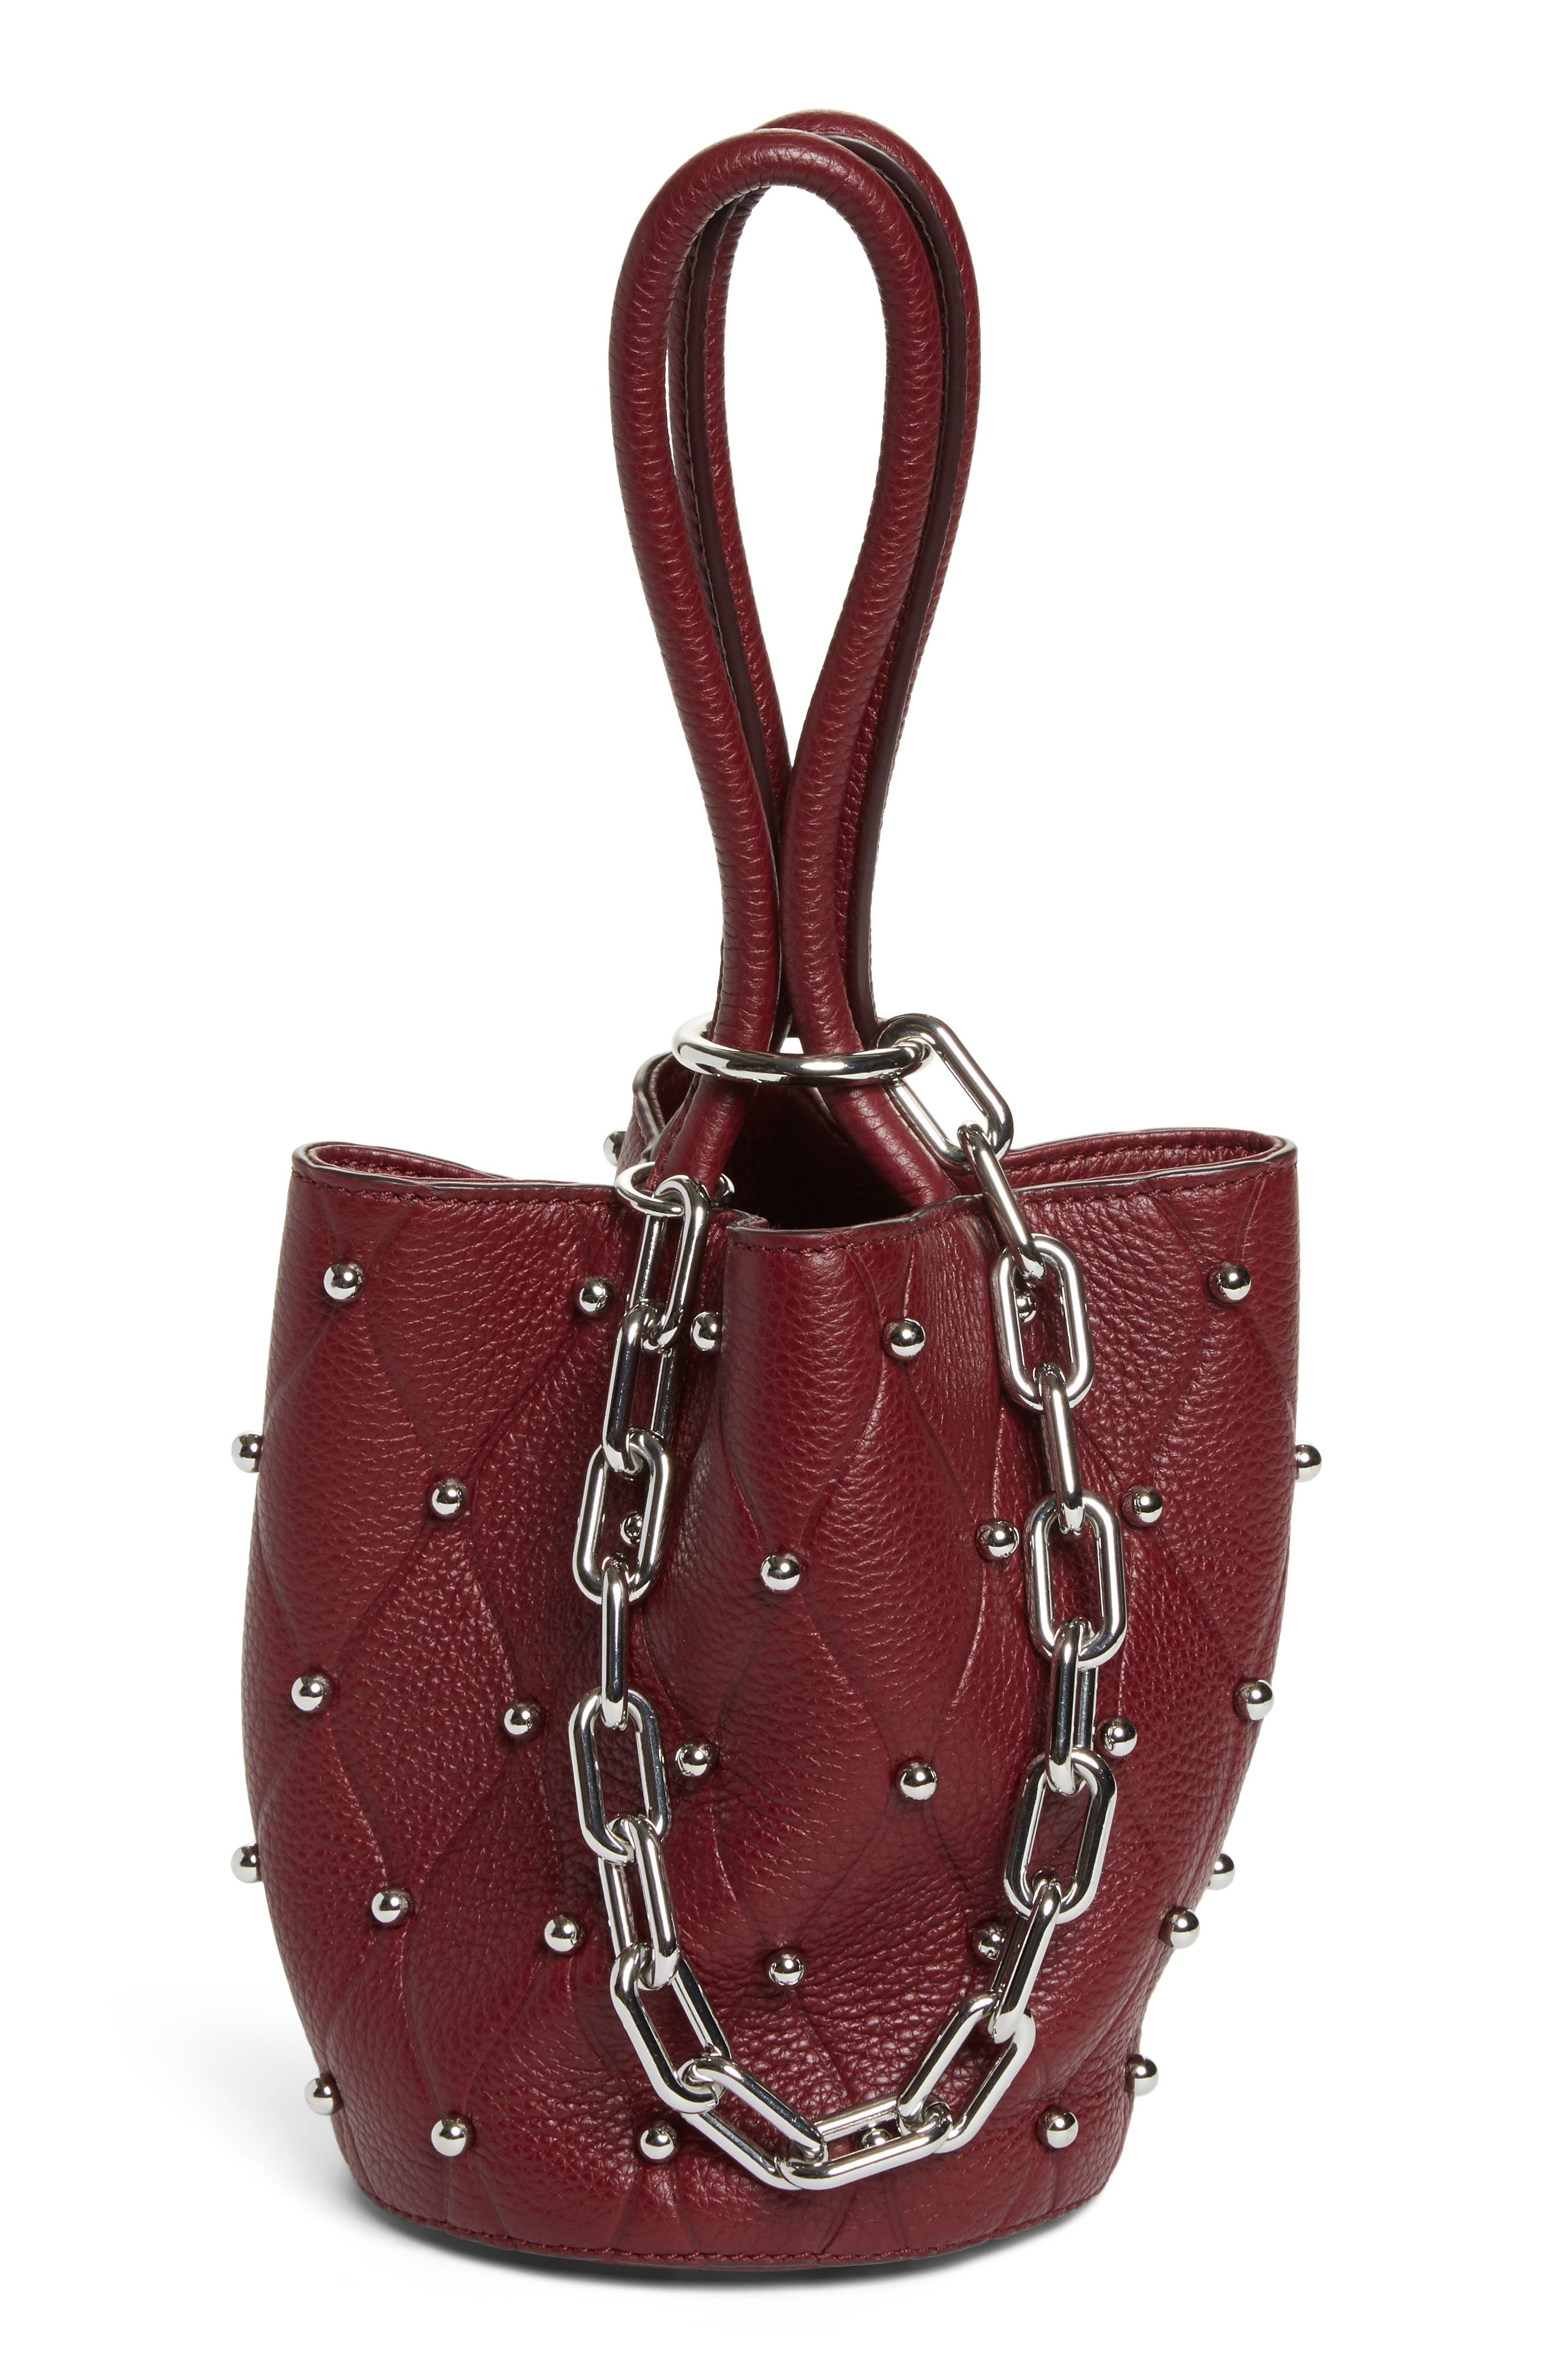 Main Image - Alexander Wang Mini Roxy Studded Leather Bucket Bag